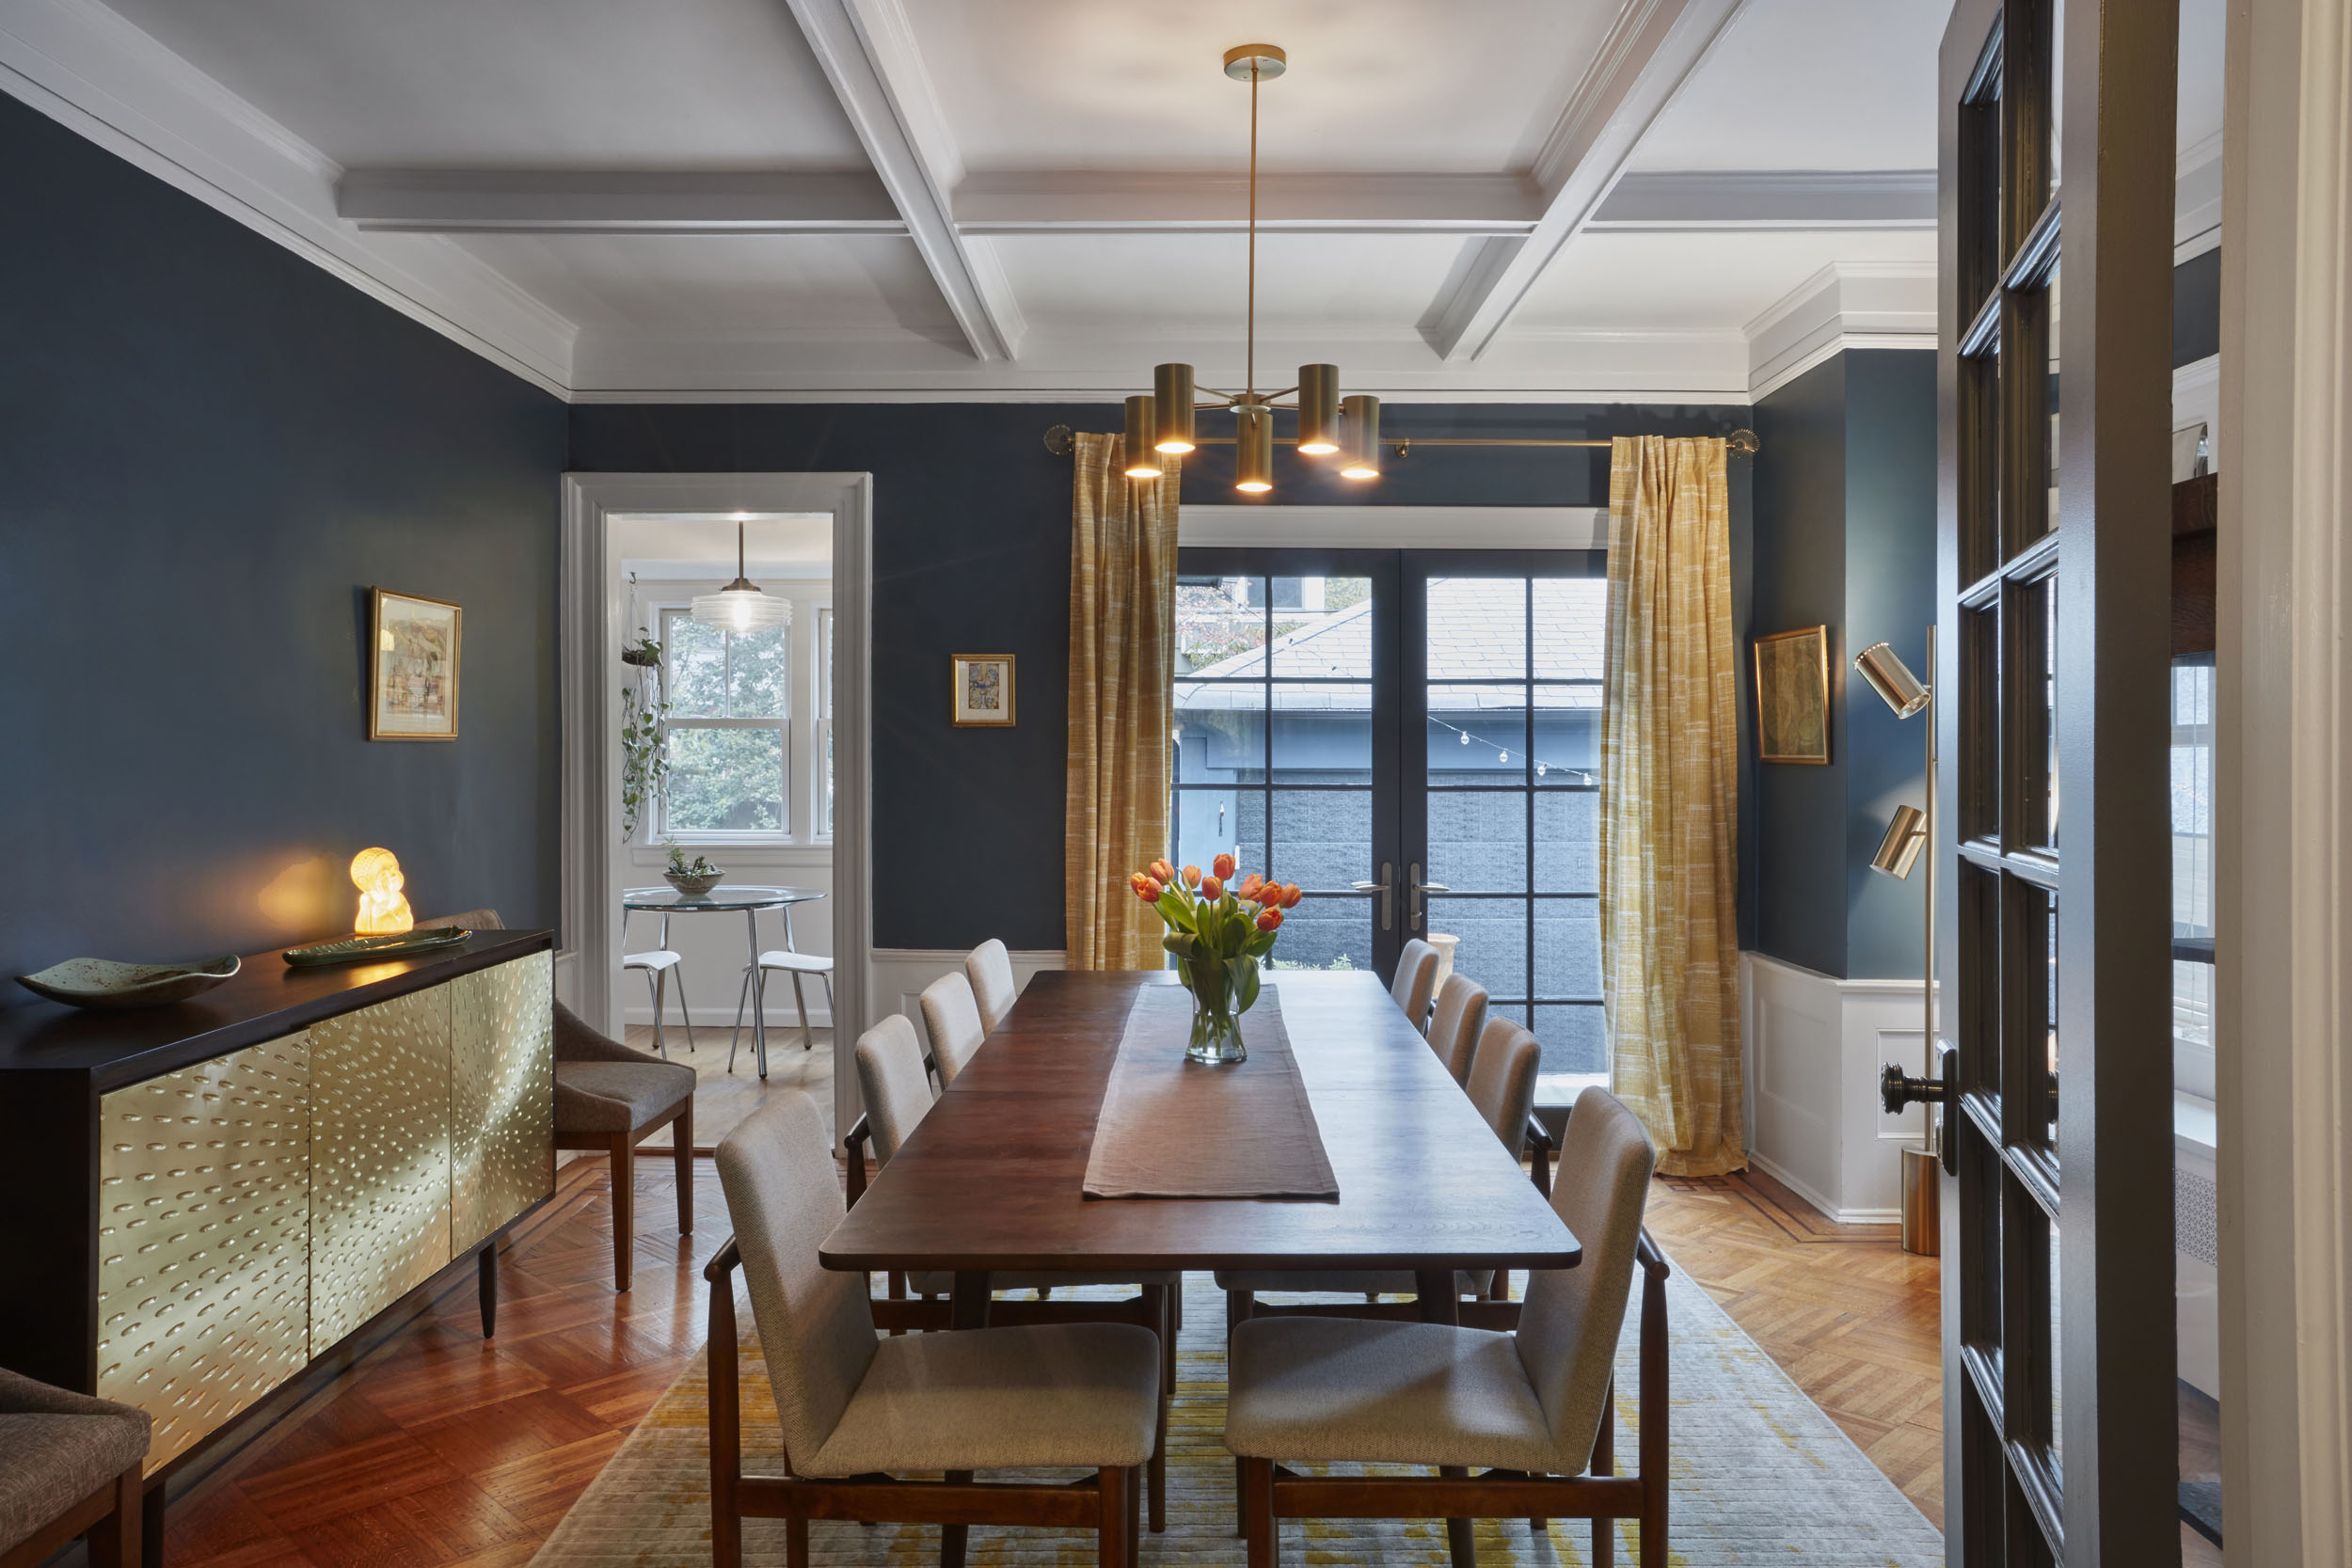 """Westminster - Year: 2016Type: ResidentialLocation: Brooklyn, NYSquare Footage: 3,386Scope of Work: Architectural and Interior DesignA couple from Ditmas Park, Brooklyn—who both work in advertising—had won a free two hour consult with Foz Design at a charity auction, during which they thought they'd simply """"discuss pillows."""" Far from it, as that meeting was the kick off to a full-scale contracted renovation project that had to reflect not just the eclectic personalities under its roof, but also the neighborhood they'd come to call home.Ditmas Park, well known for its Victorian architecture, complete with front and back yards, has become inhabited by an increasingly multi-cultural demographic. Similarly , we were able to come up with solutions that beautifully blended a variety of design genres, both inside and out.On the exterior, forms were kept traditional while finishes including paint and window trims were changed to give the architecture a more modern twist. Leading out to the patio and backyard is a new set of French doors that were added in the dining room, allowing for more natural light to enter the home.On the inside, styles such as Mid-century modern flow seamlessly with touches of ethnic elements as well as bright splashes of color and engaging print and pattern. The basement, previously only used for storage and laundry, was turned into a rec room for their two sons, allowing for a more formal living room upstairs. And the entire project was topped off by selecting the pillows that sparked our working relationship more than a year ago."""